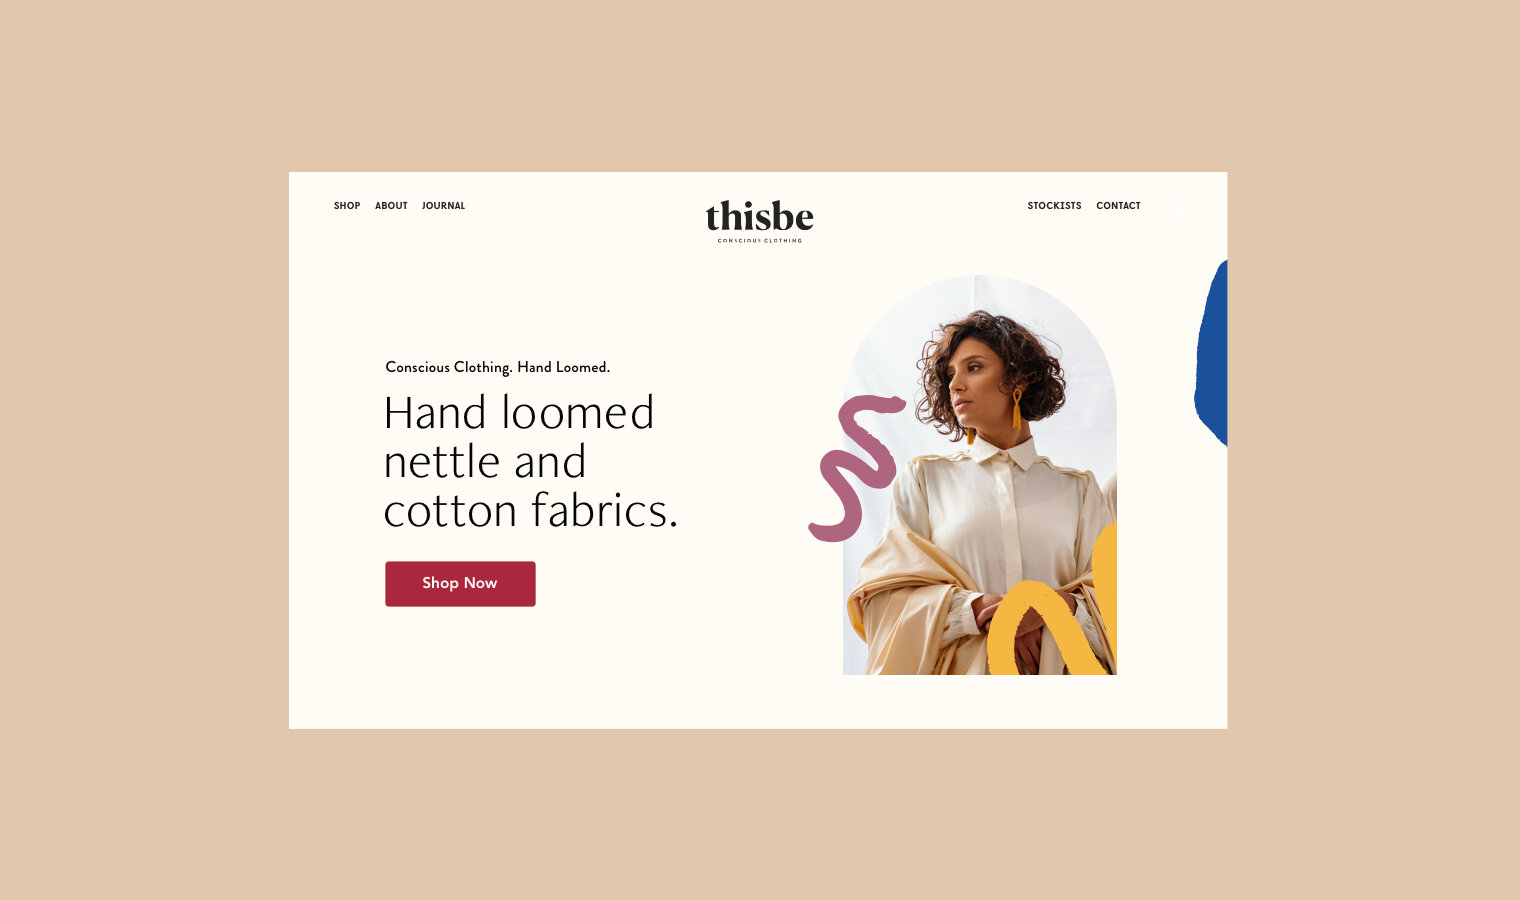 website-ethical-brand-thisbe-conscious-clothing-slow-fashion.jpg